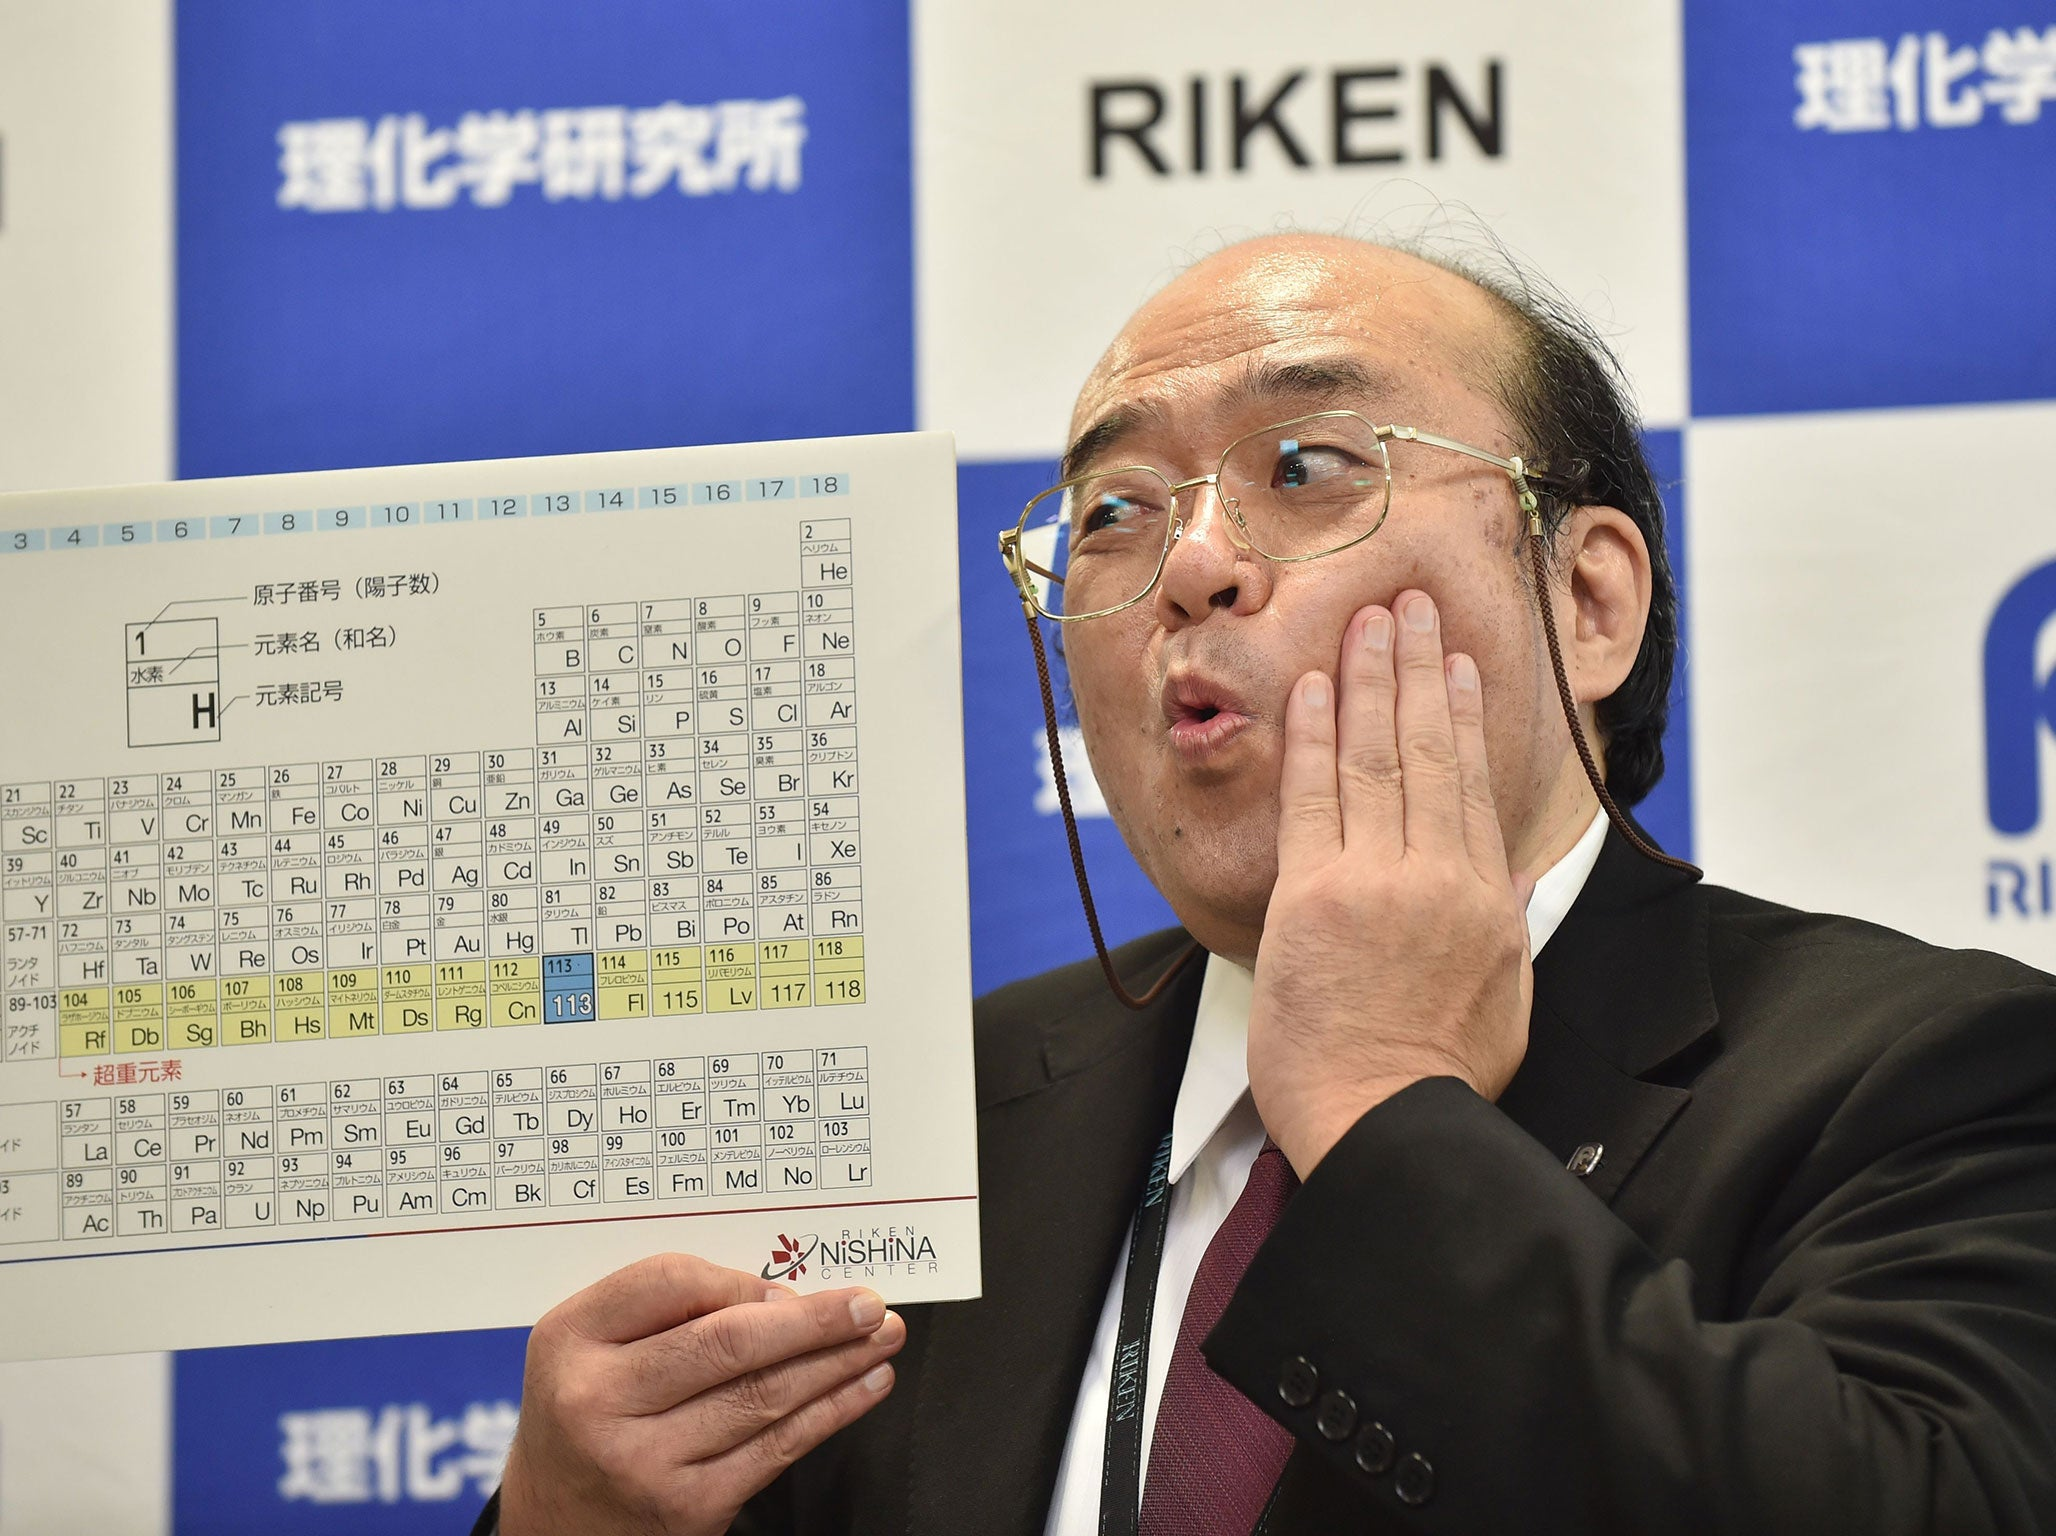 Periodic table gets four new elements making science textbooks periodic table gets four new elements making science textbooks around the world out of date the independent gamestrikefo Gallery